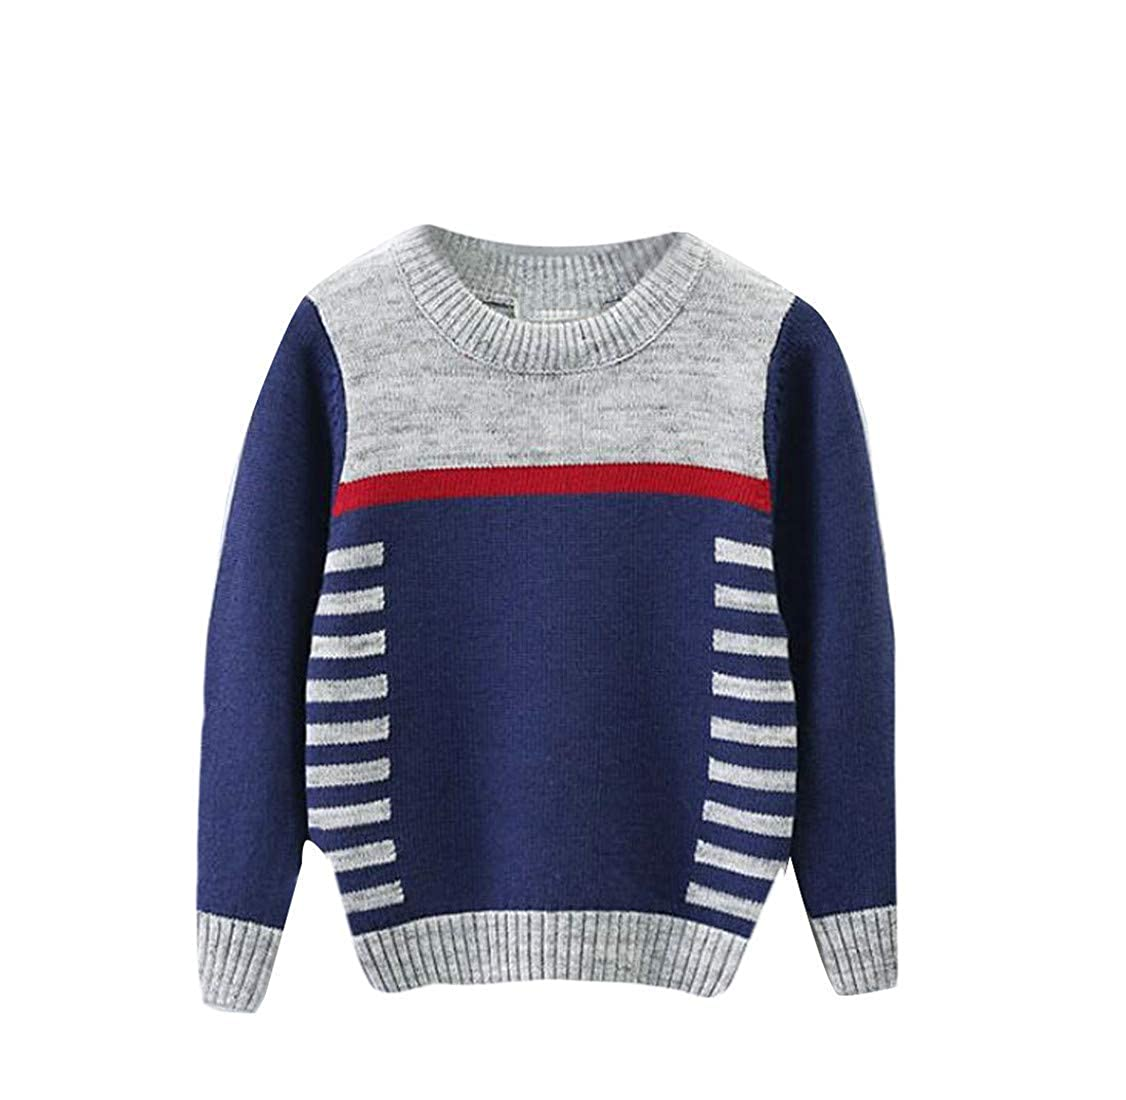 Joe Wenko Boys Cute Classic-fit Knitted Girl Jumper Pullover Sweater